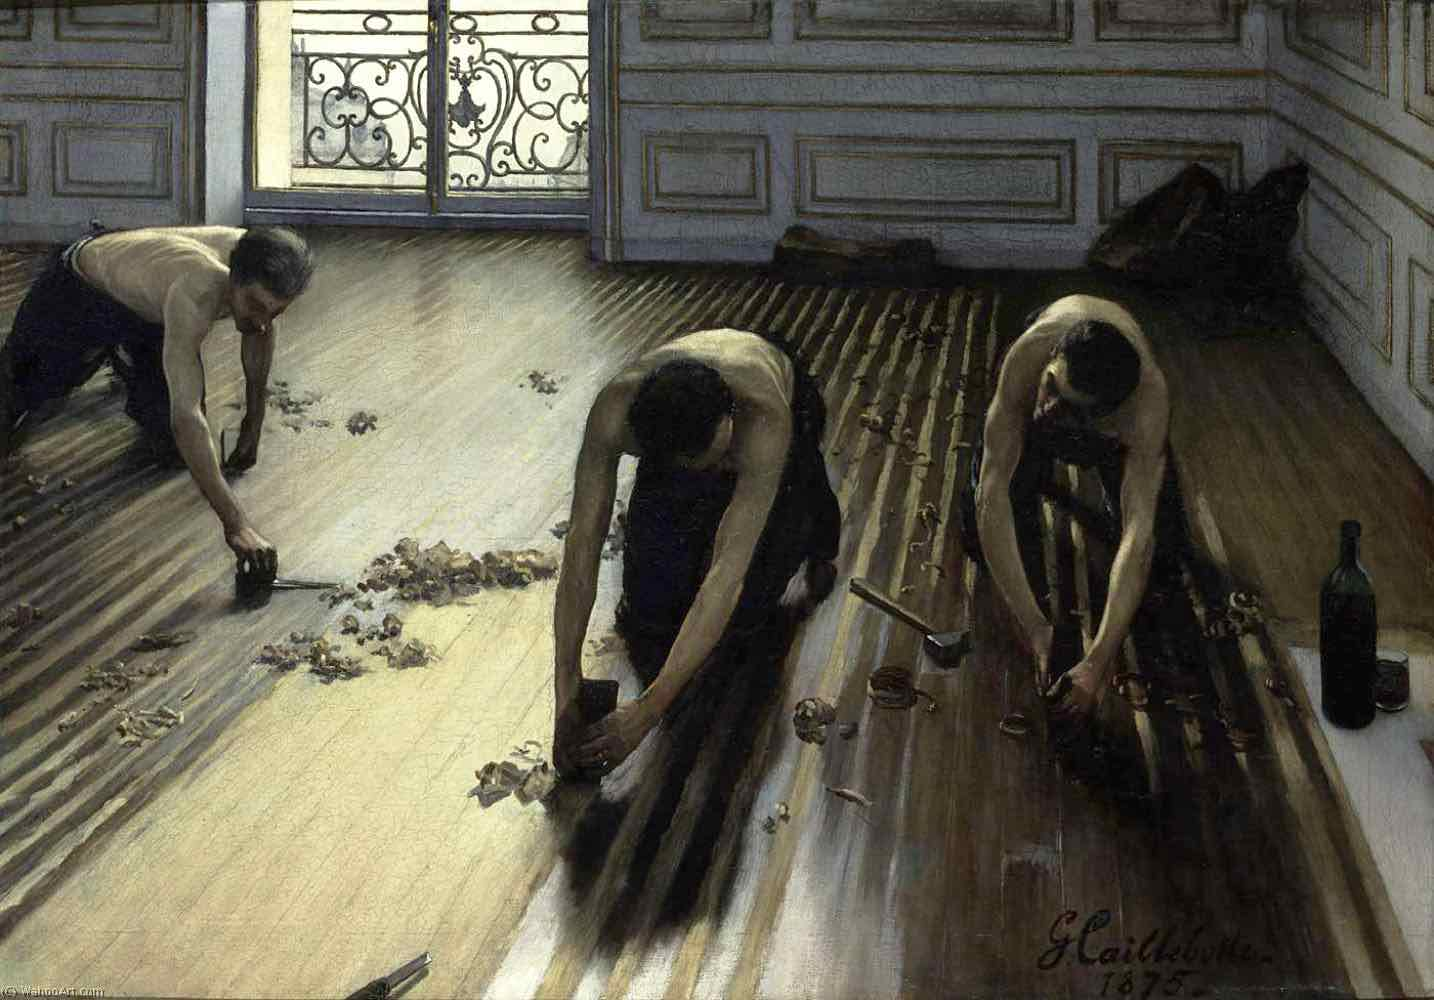 Gustave_Caillebotte-The_Floor_Scrapers_also_known_as_The_Floor_Strippers_.jpg